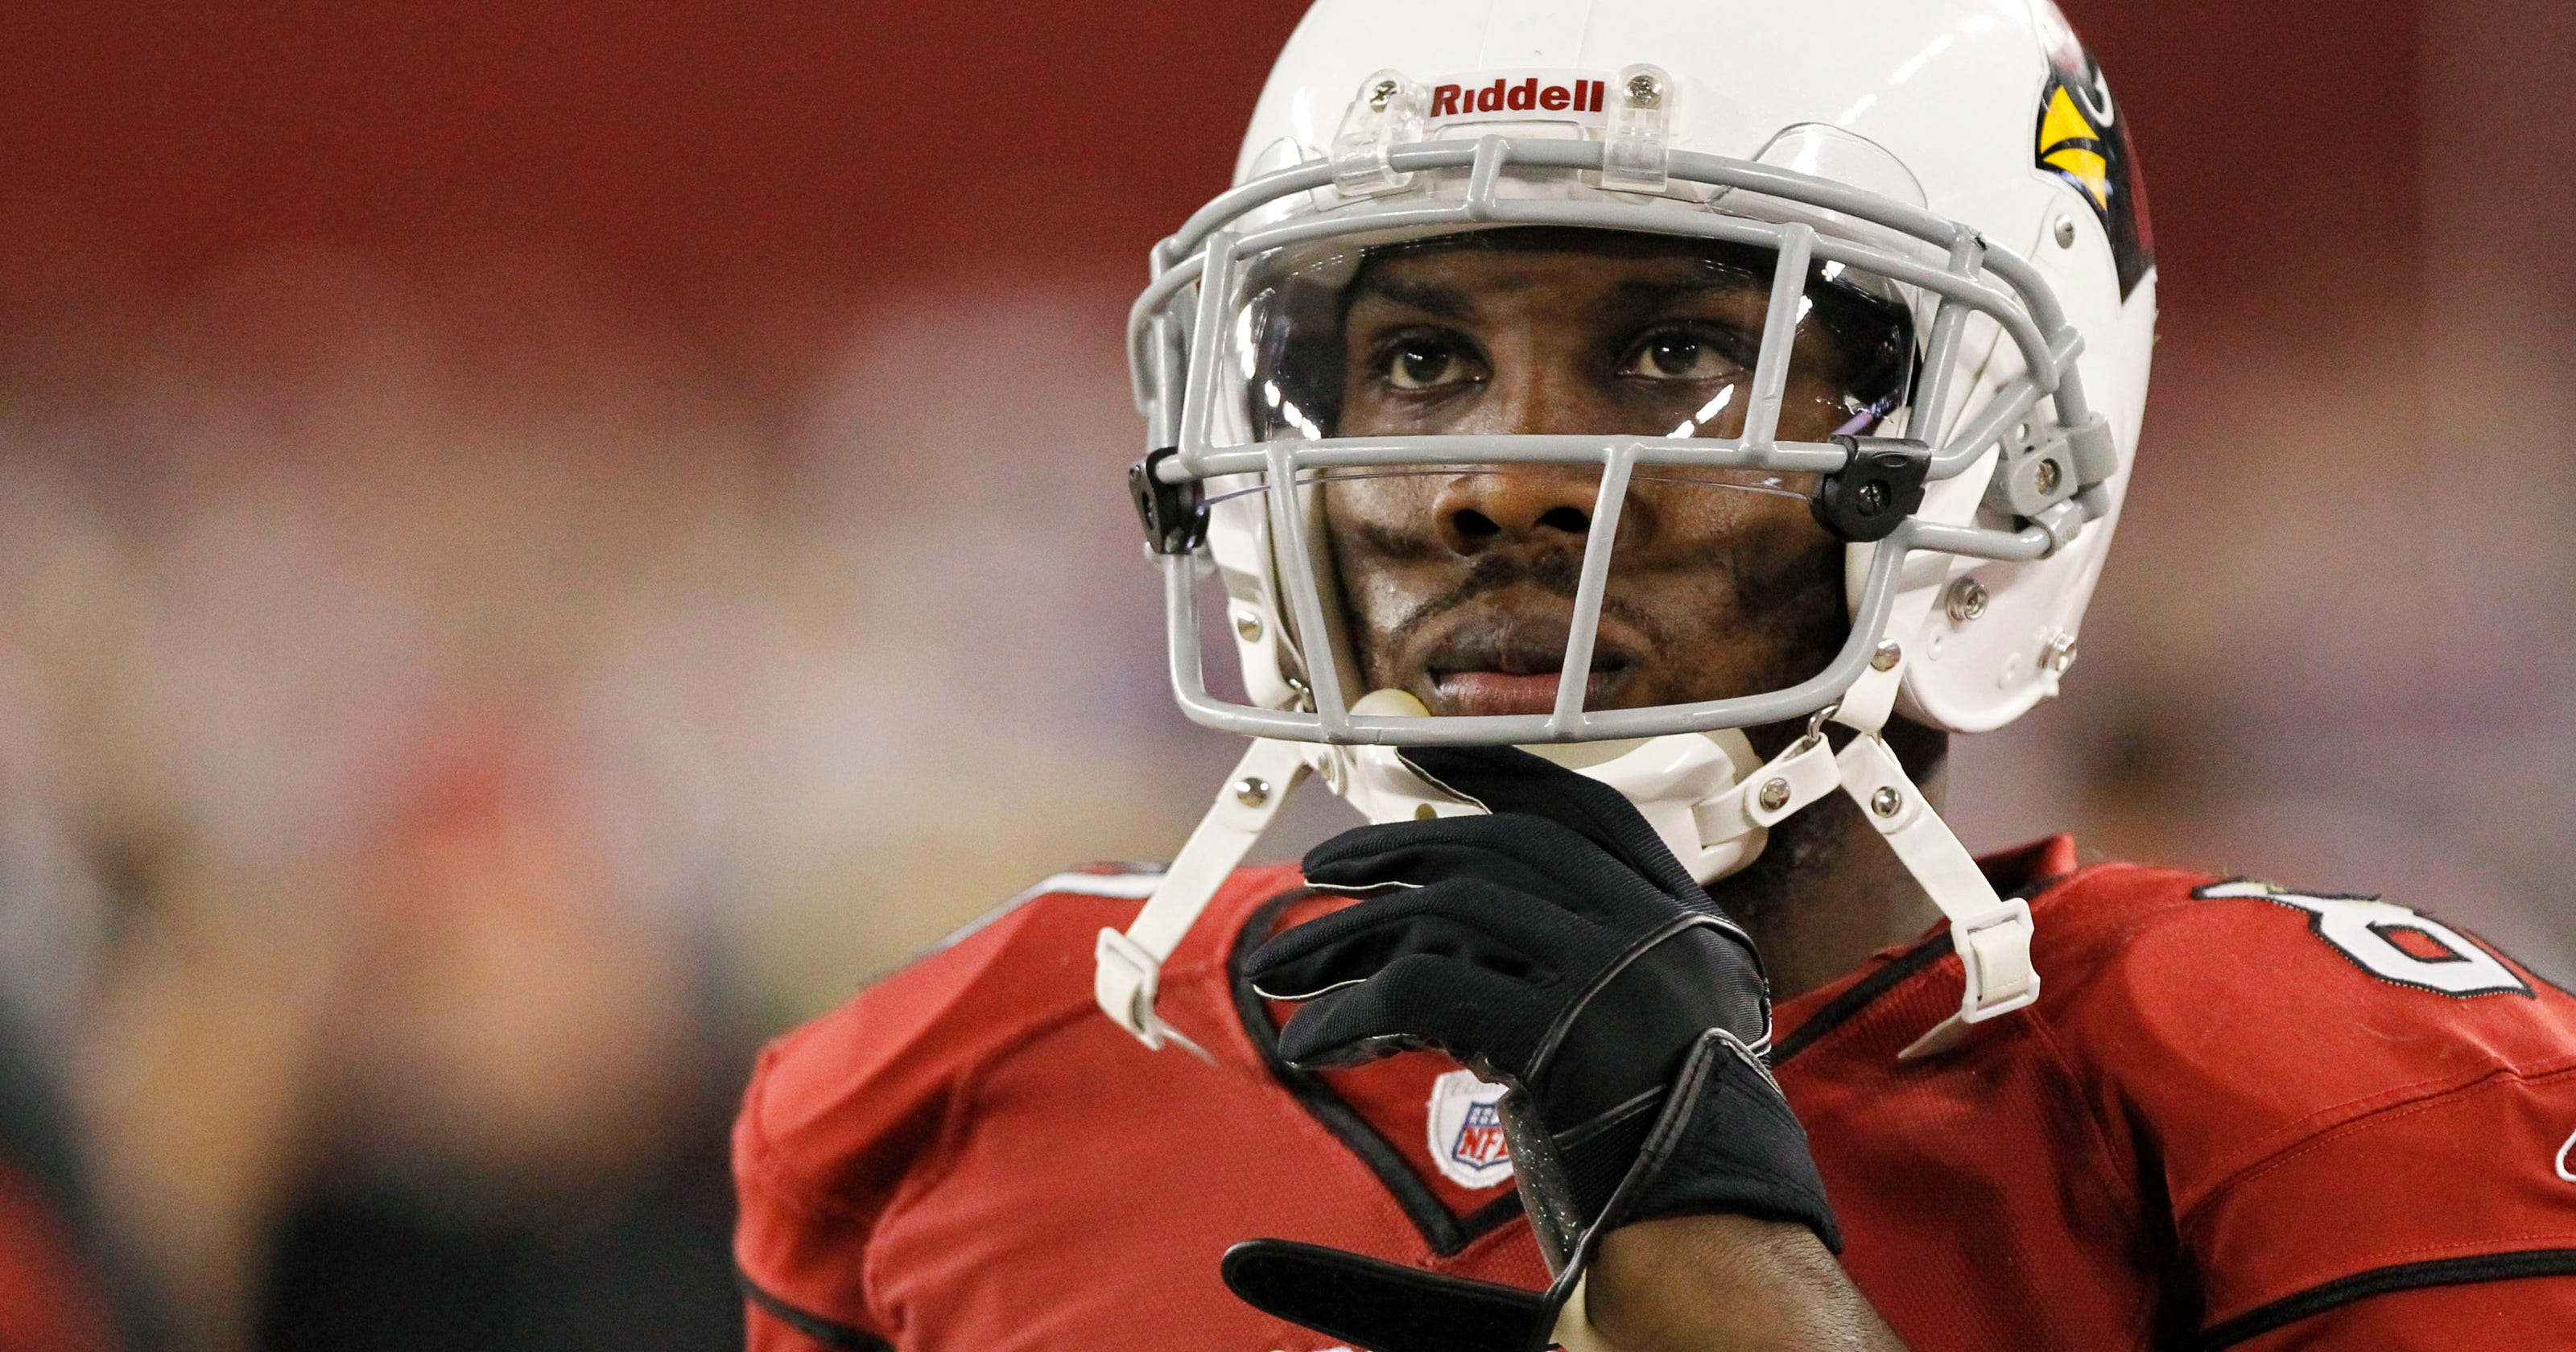 baa8e64e770 Former Arizona Cardinals standout receiver Anquan Boldin left a legacy in  Arizona